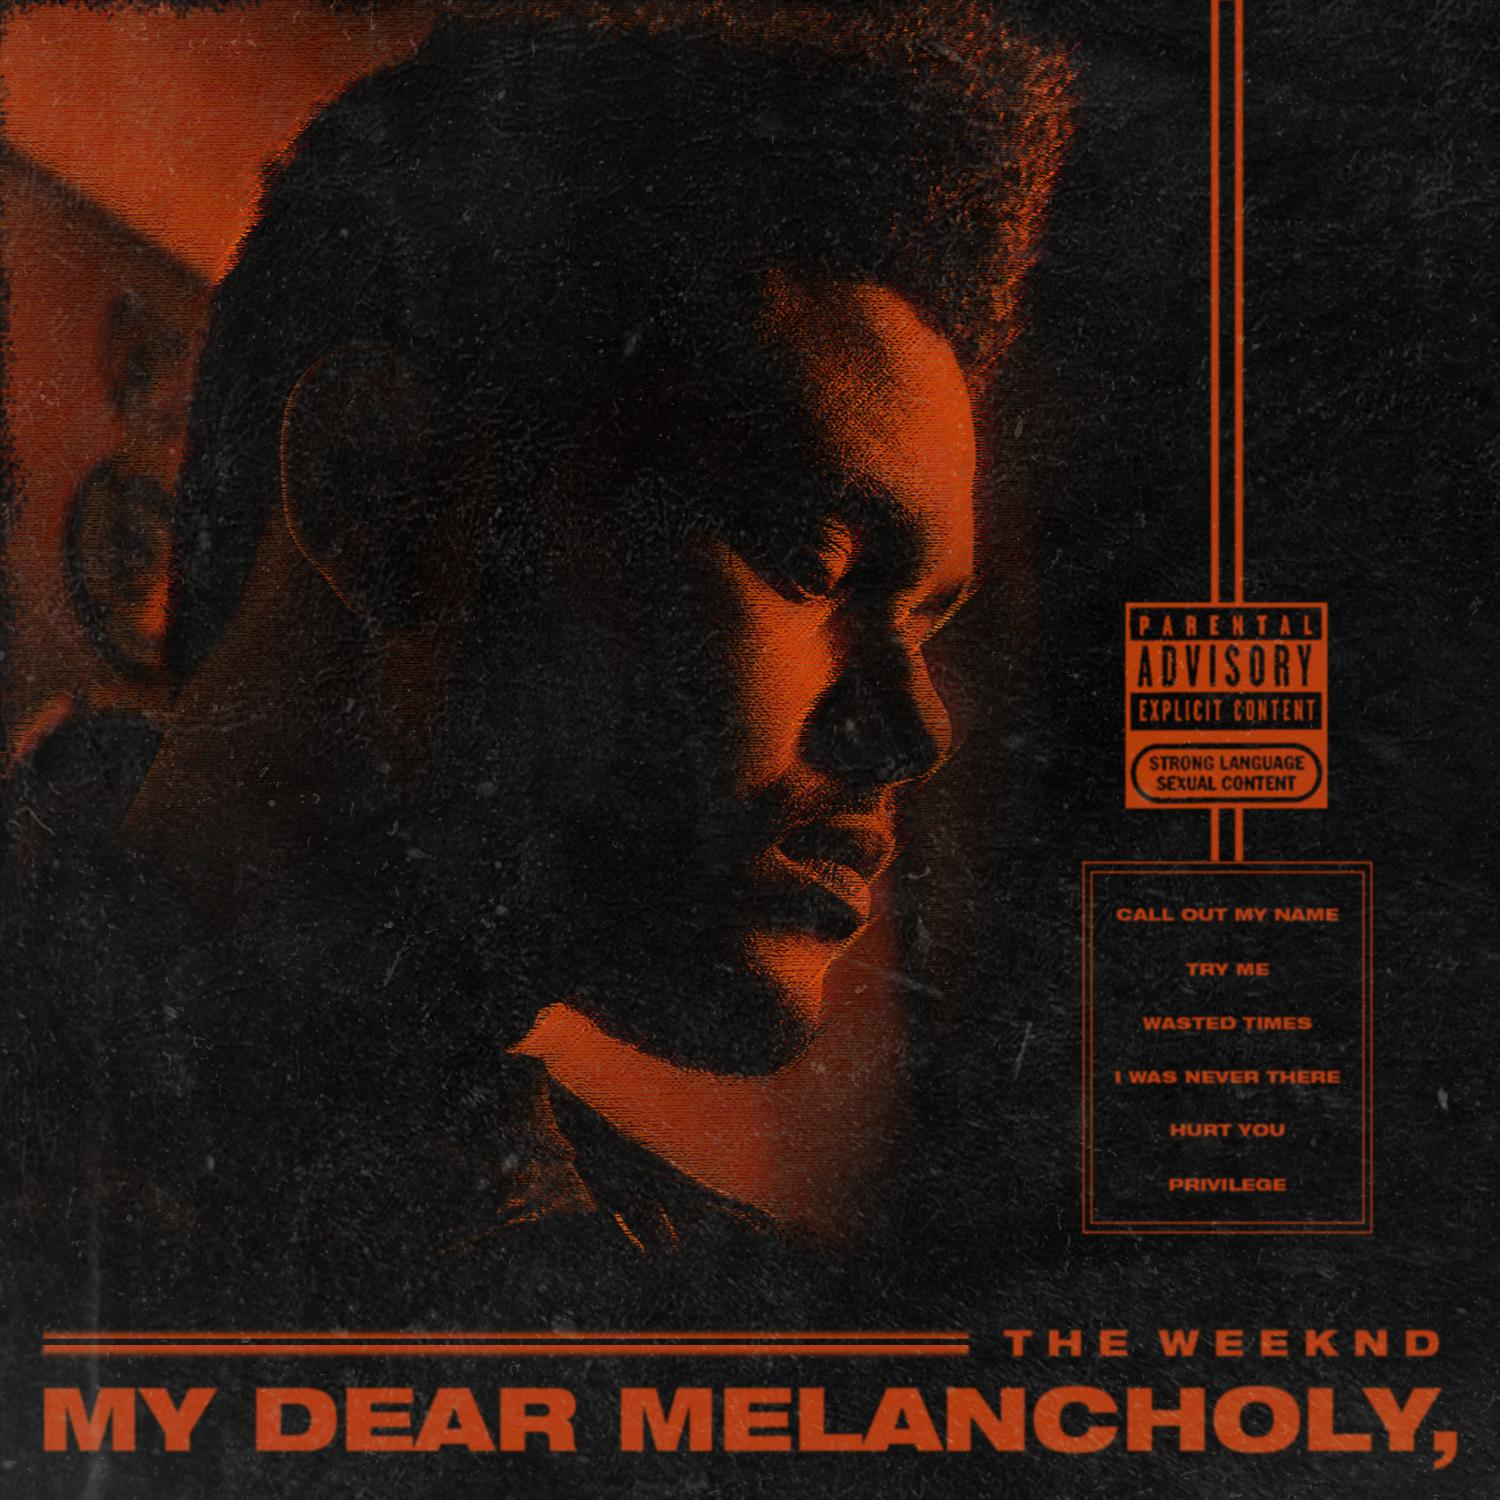 My Dear Melancholy Lives Up to its Name